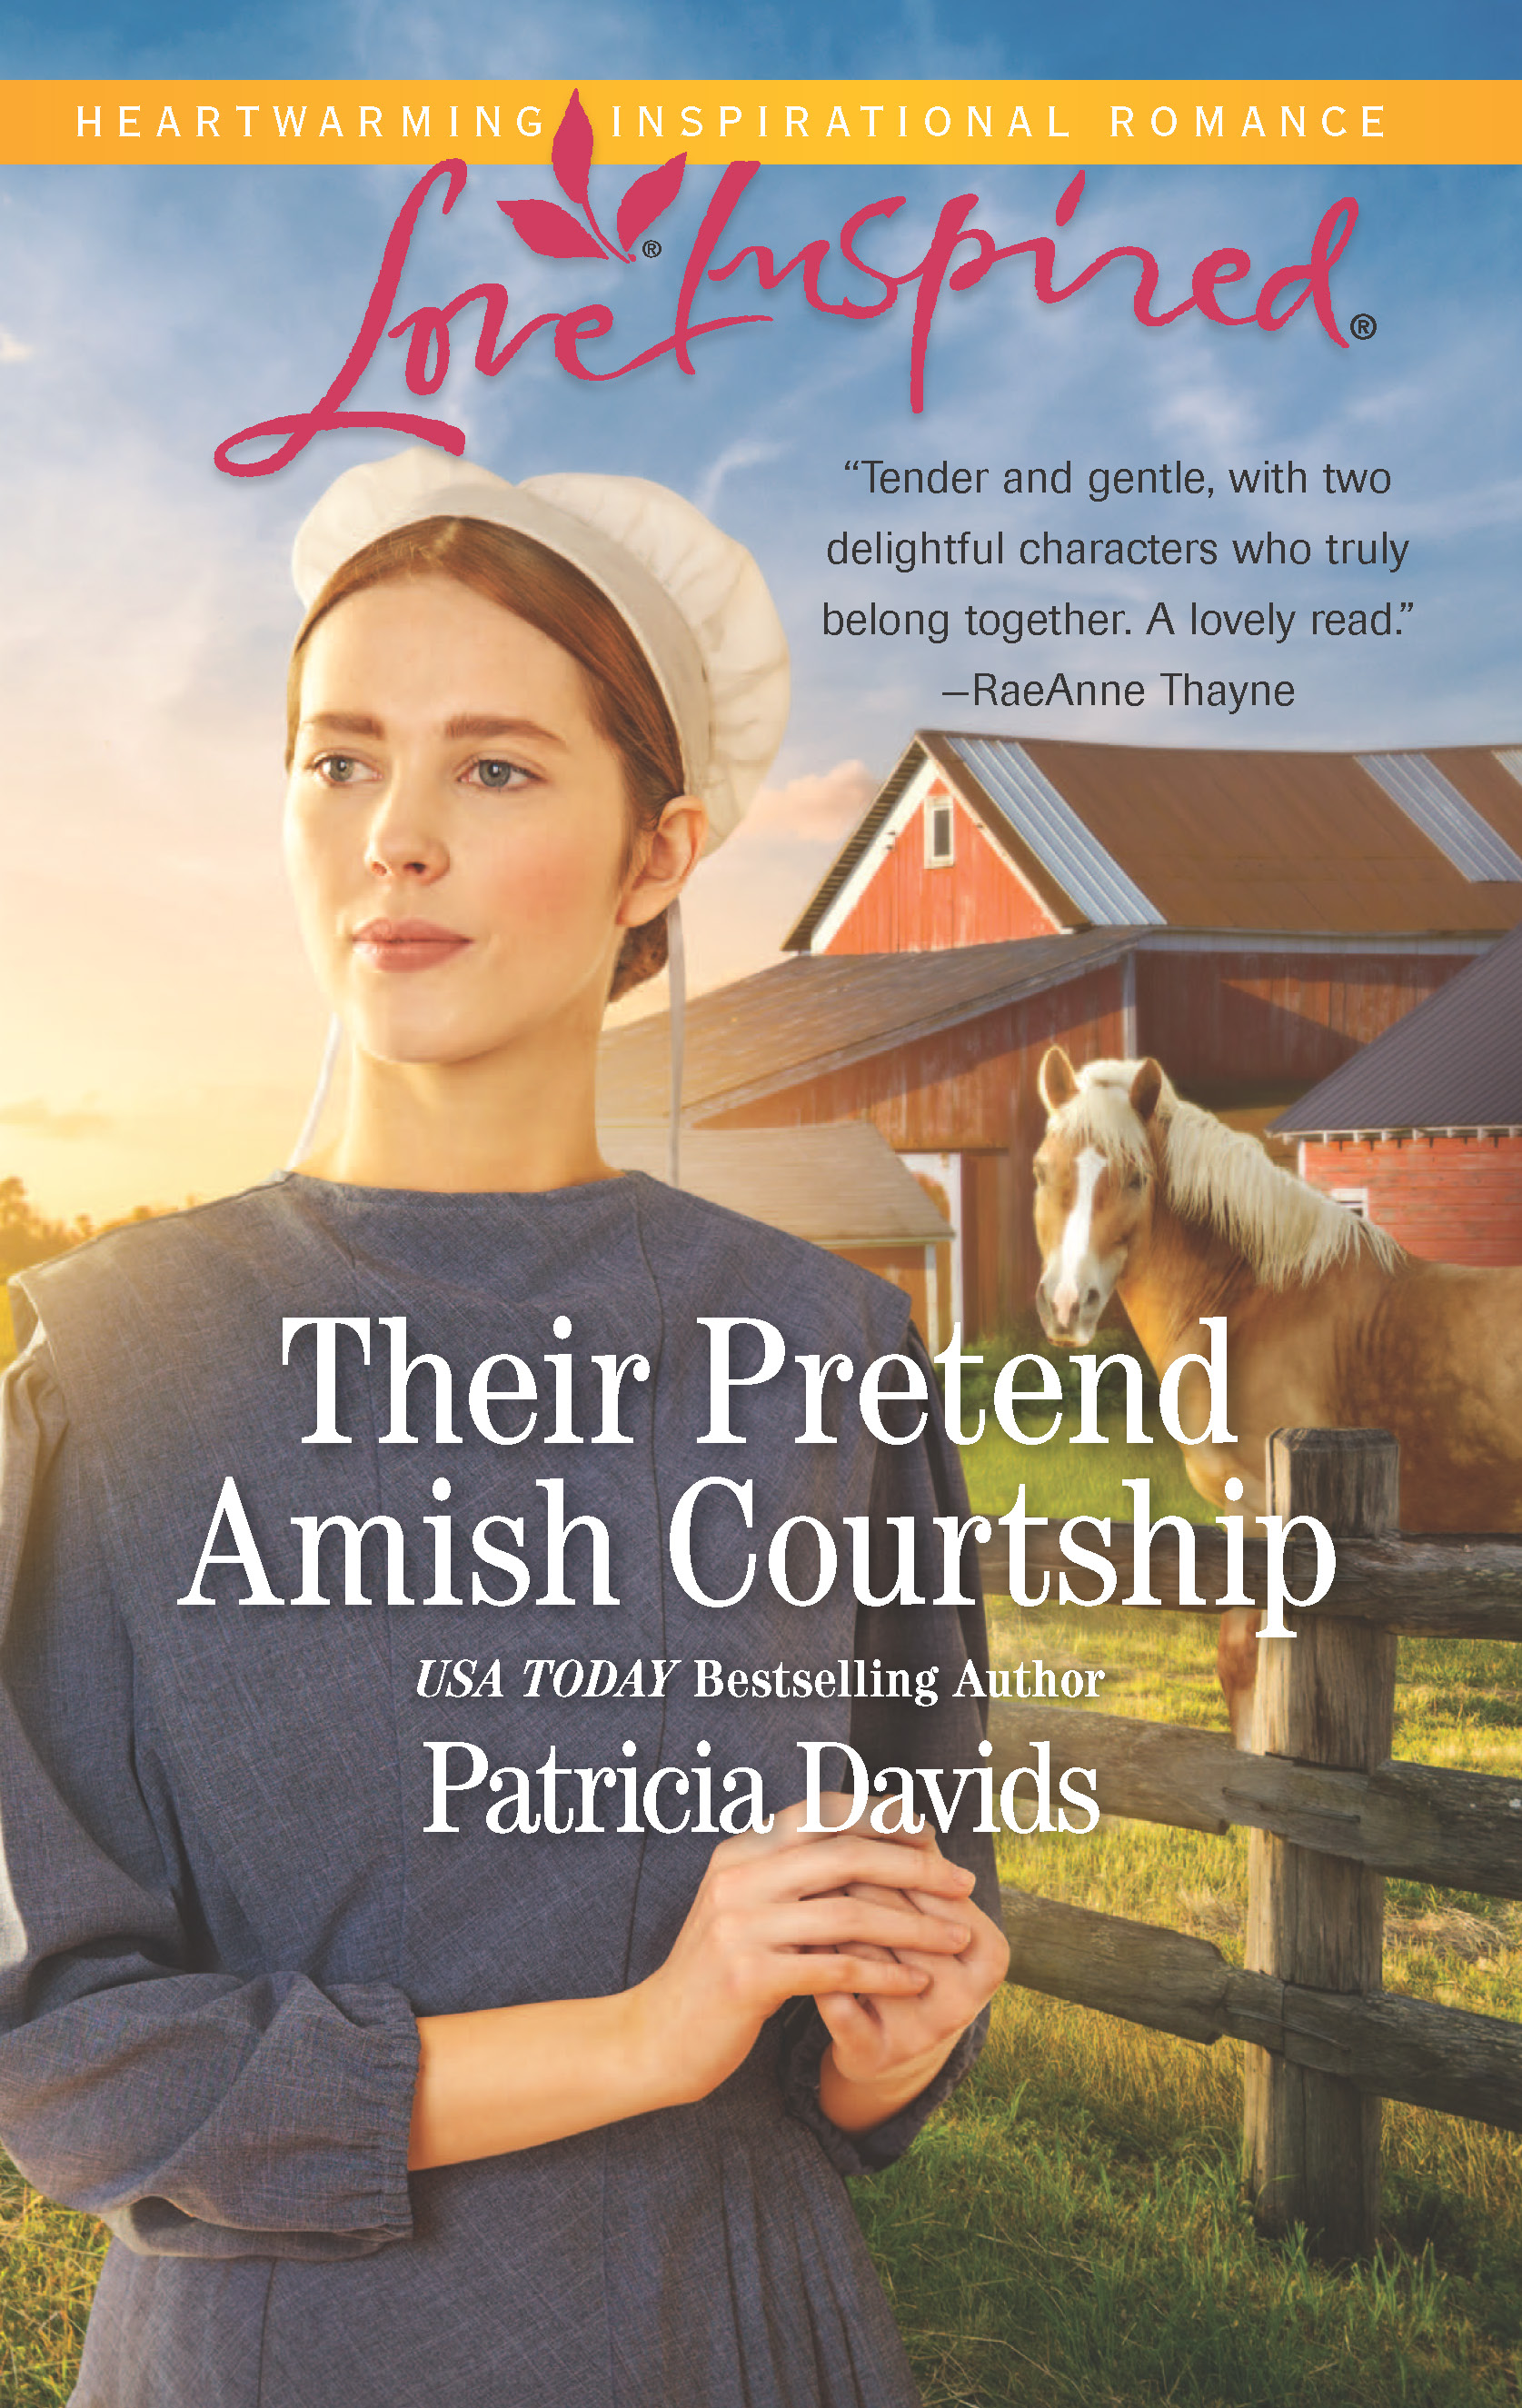 BookTrib Blog Tour Review: Their Pretend Amish Courtship by Patricia Davids